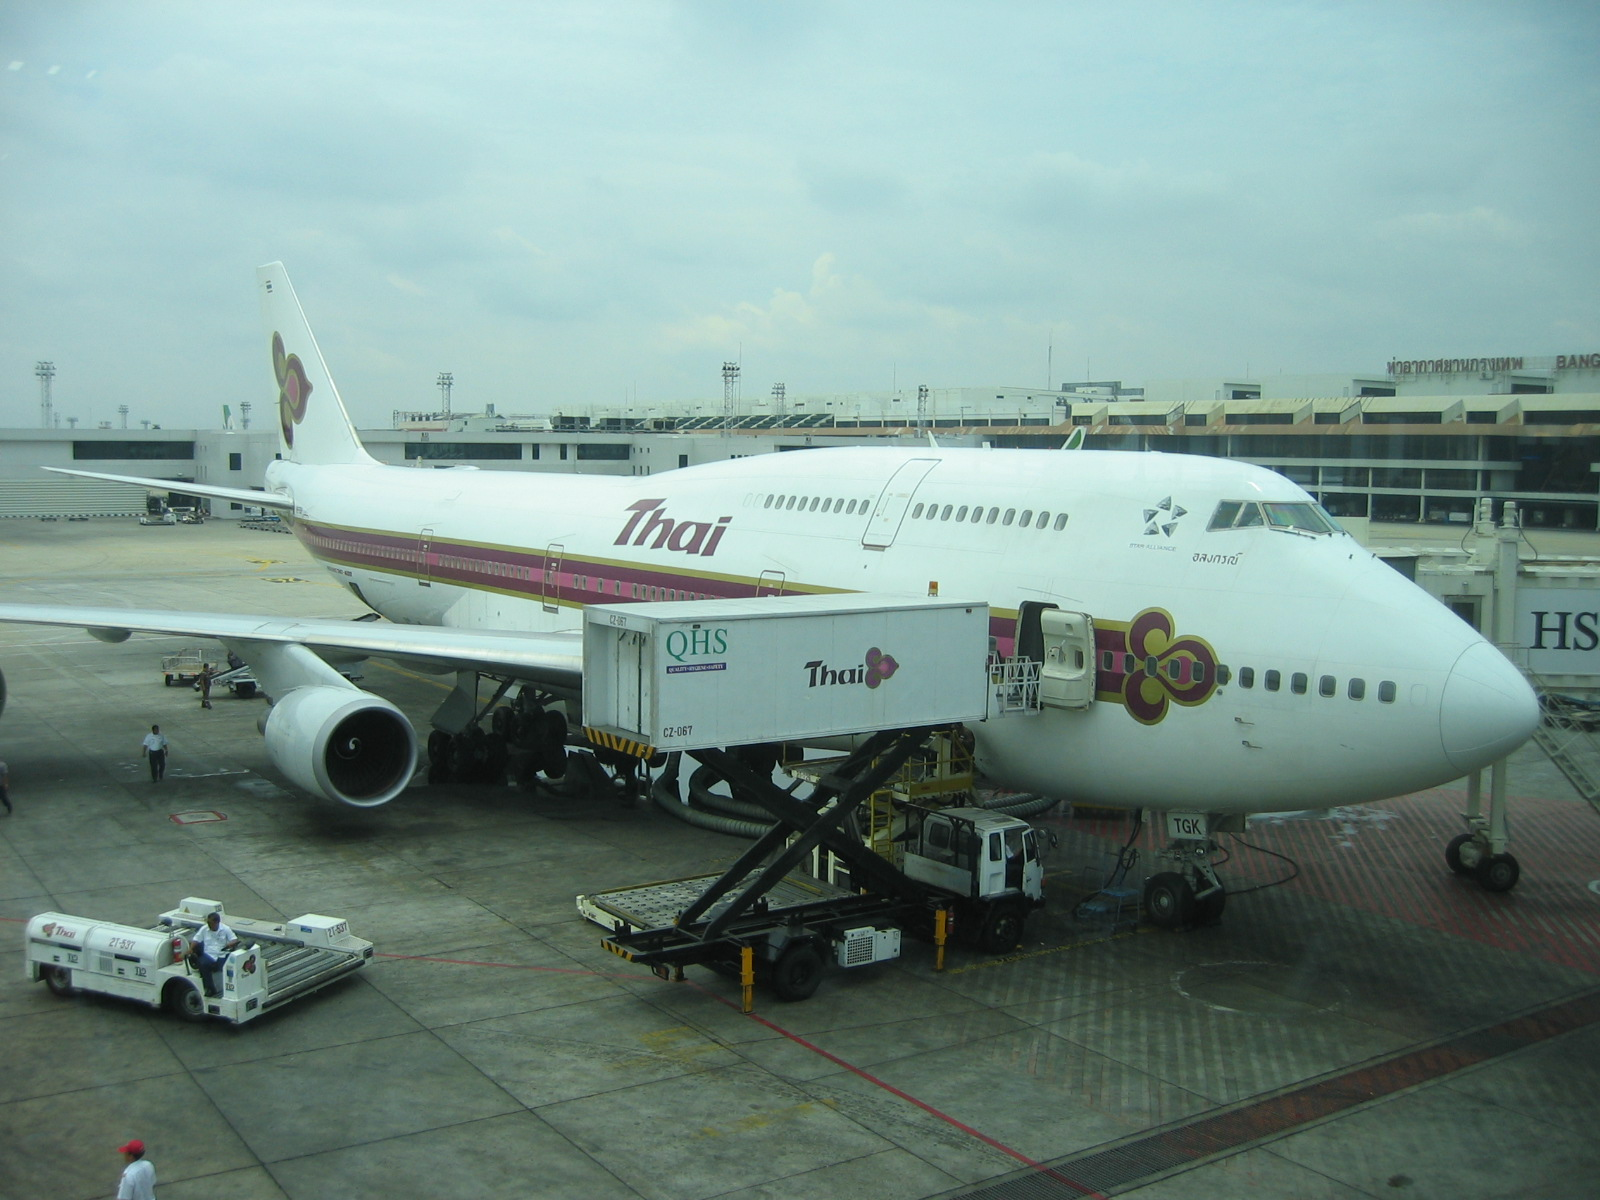 Download this Description Thai Airways Int Boeing Bkk picture